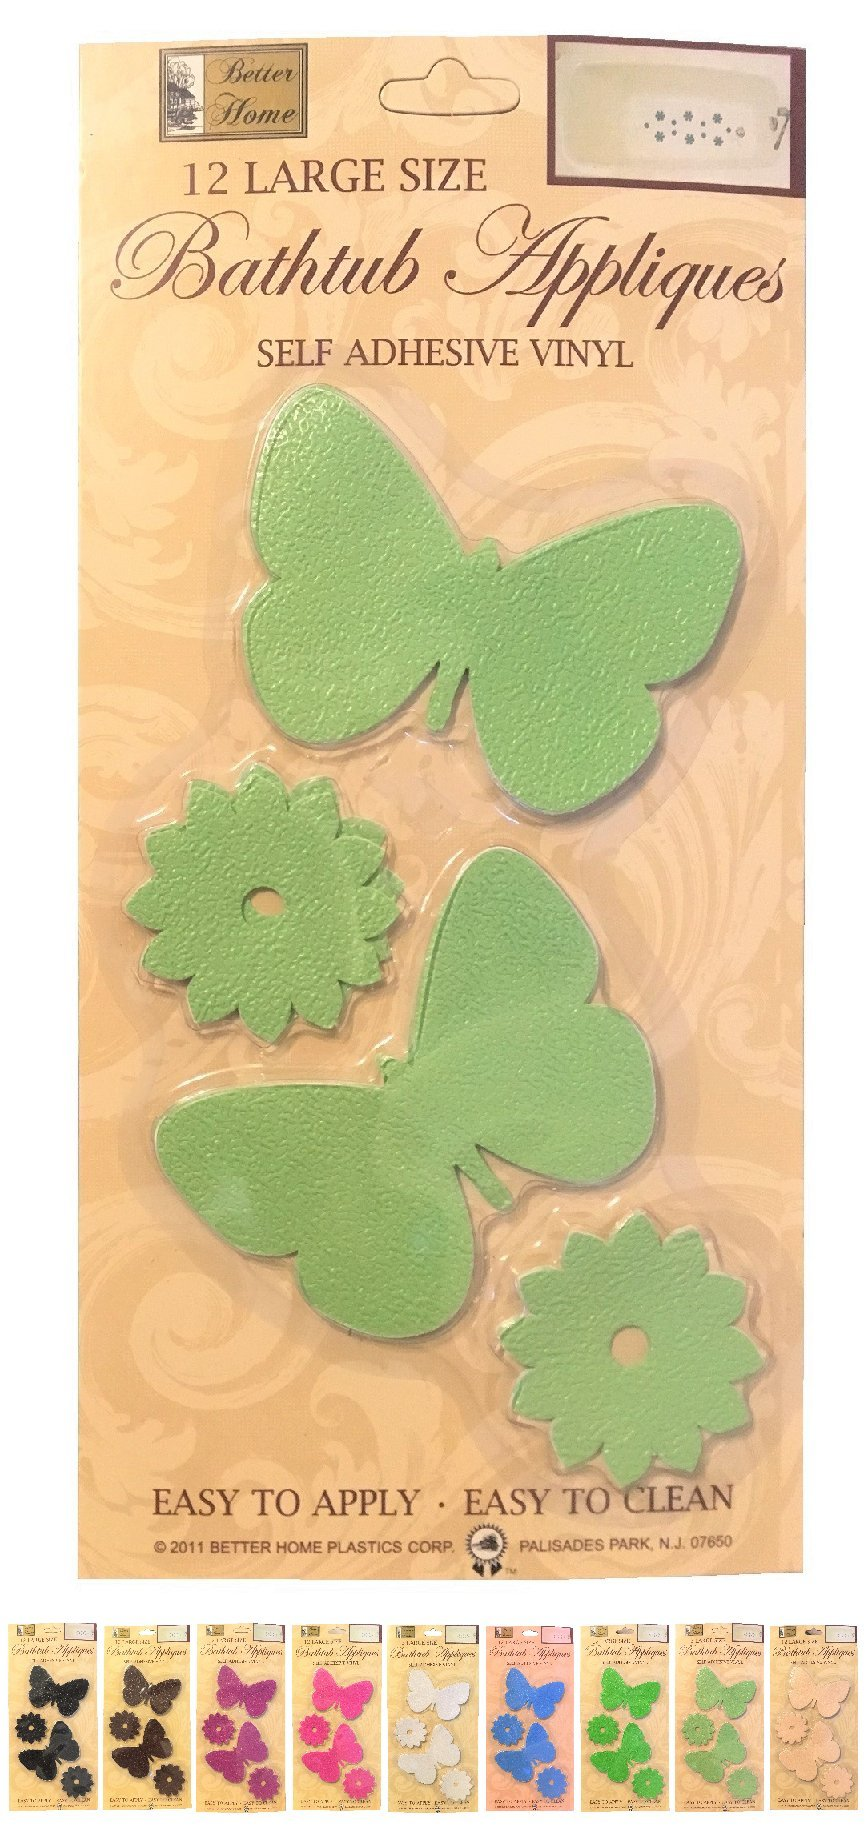 Better Home Plastic Corp 12 Butterfly Shaped Bathtub/Shower Appliques Safety Non Slip Treads, Decorative Color Selection (Light Green)